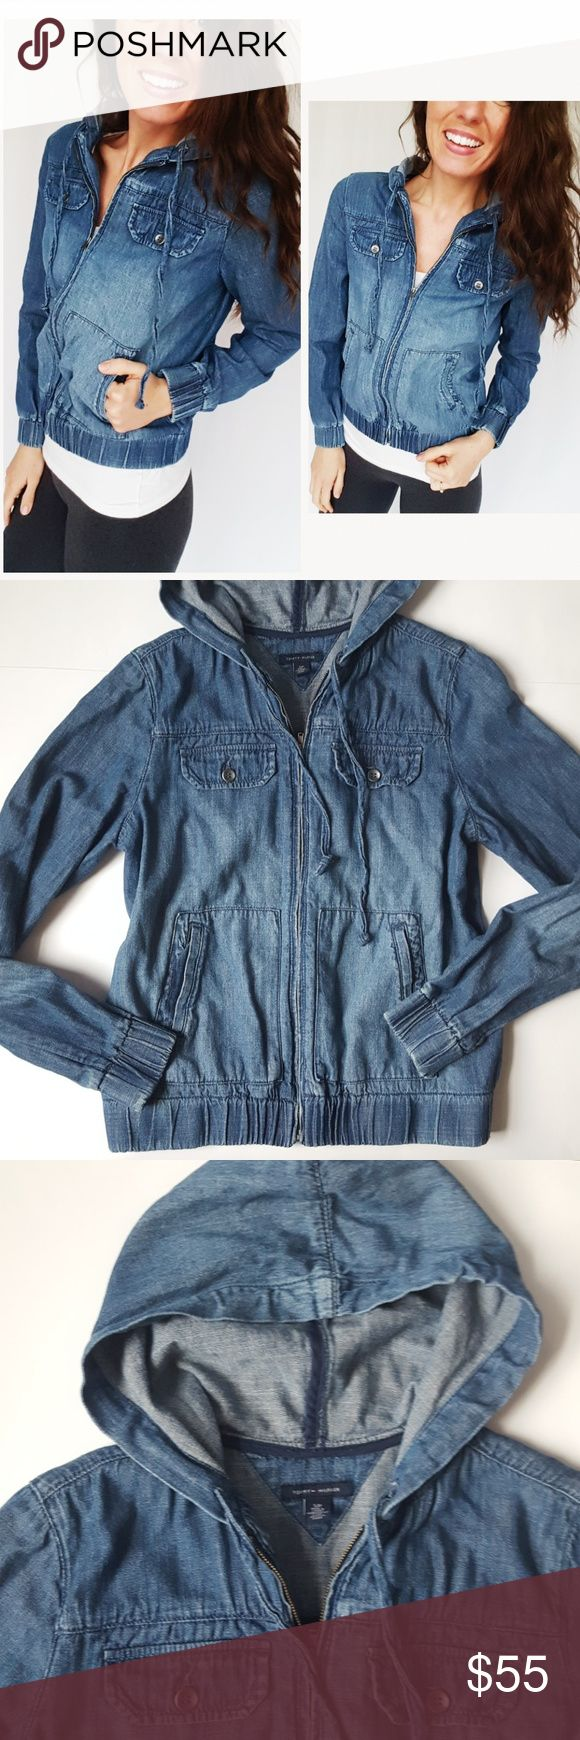 SALE! Tommy Hilfiger denim zip up bomber jacket-D5 In good condition! Tommy Hilfiger denim zip up hoodie jacket, size small. Loose fit and 100% cotton. Used item: pictures show any signs of wear. Inspected for quality. Bundle up! Offers always welcome:)  Check out my husband's closet: @kirchingeraaron Tommy Hilfiger Tops Sweatshirts & Hoodies